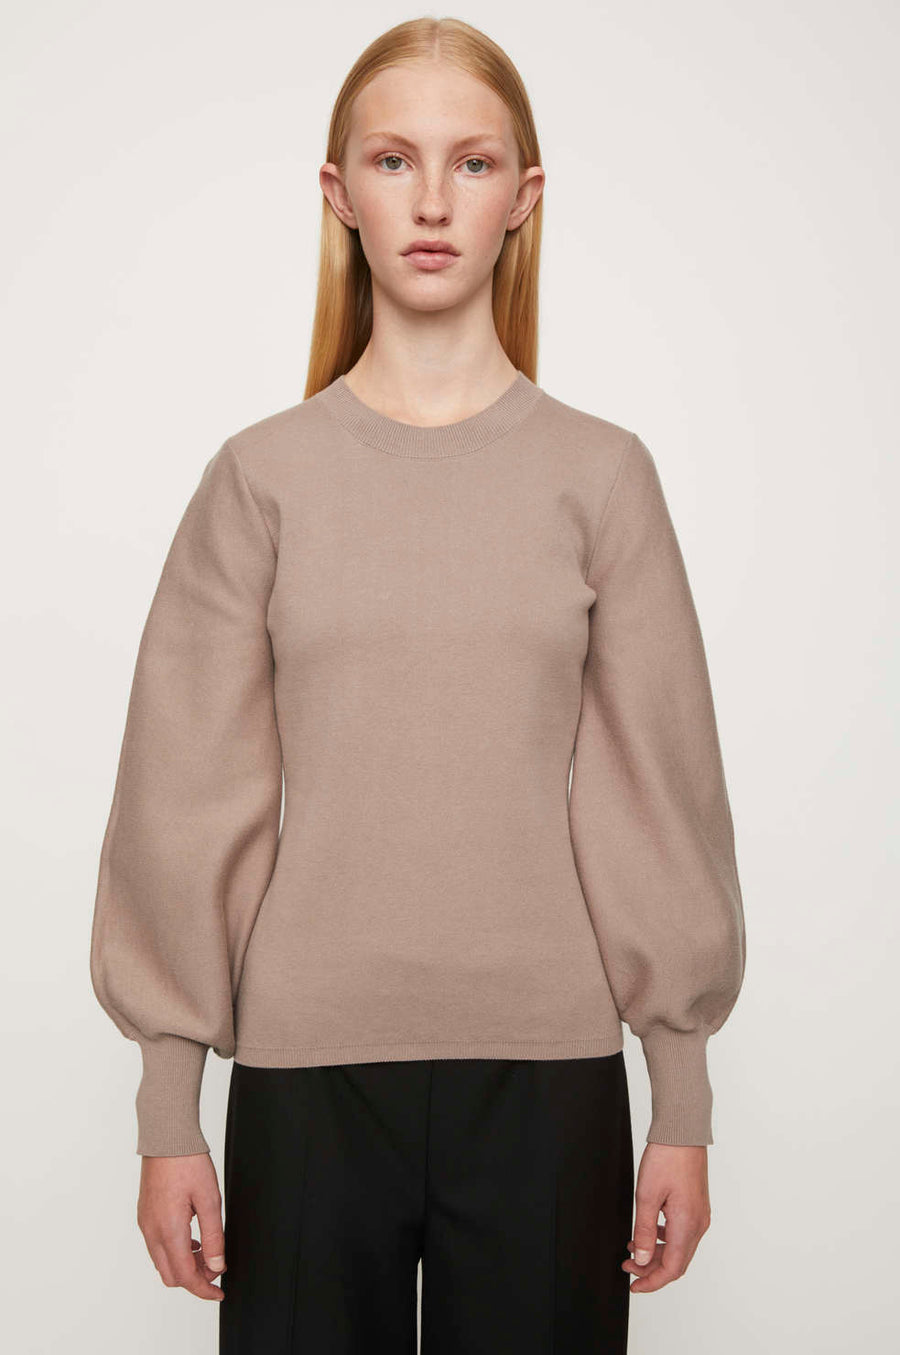 Palma Knit Sweater JUST FEMALE